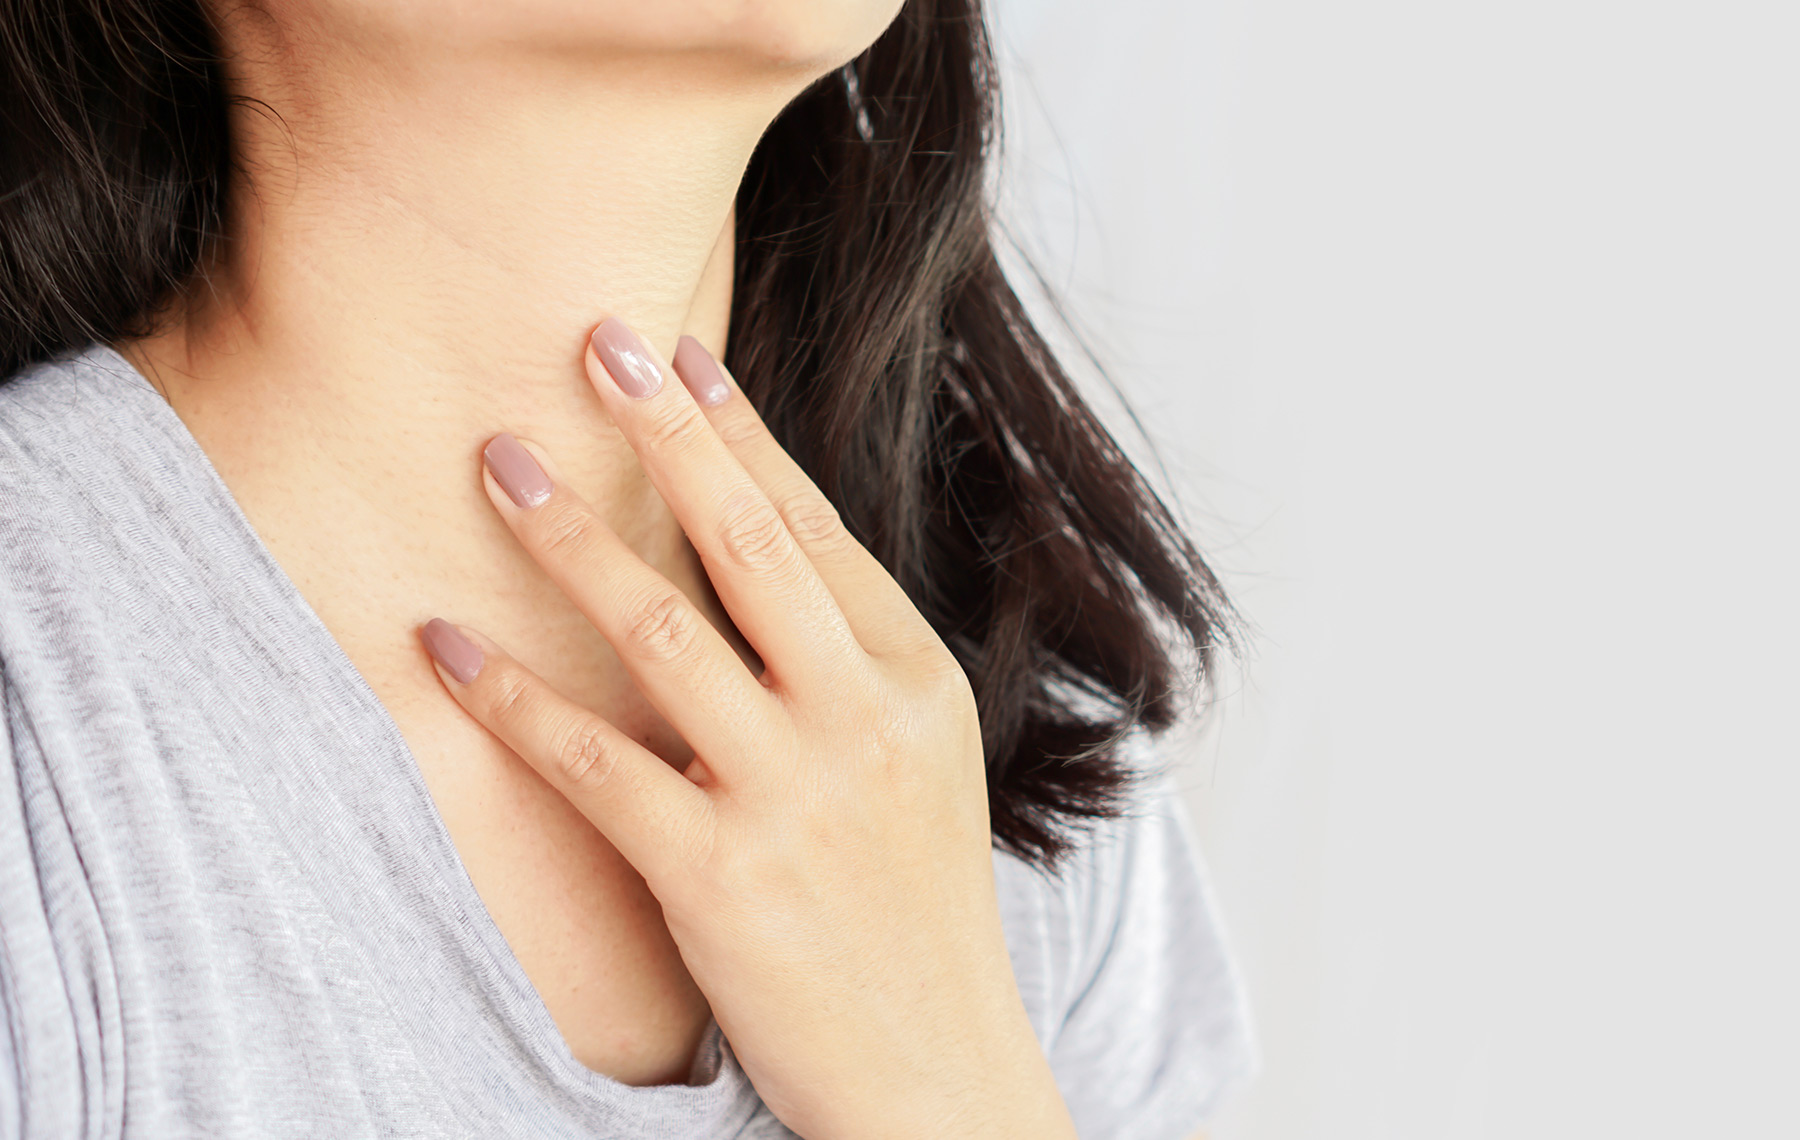 woman hand self checking thyroid gland on her neck